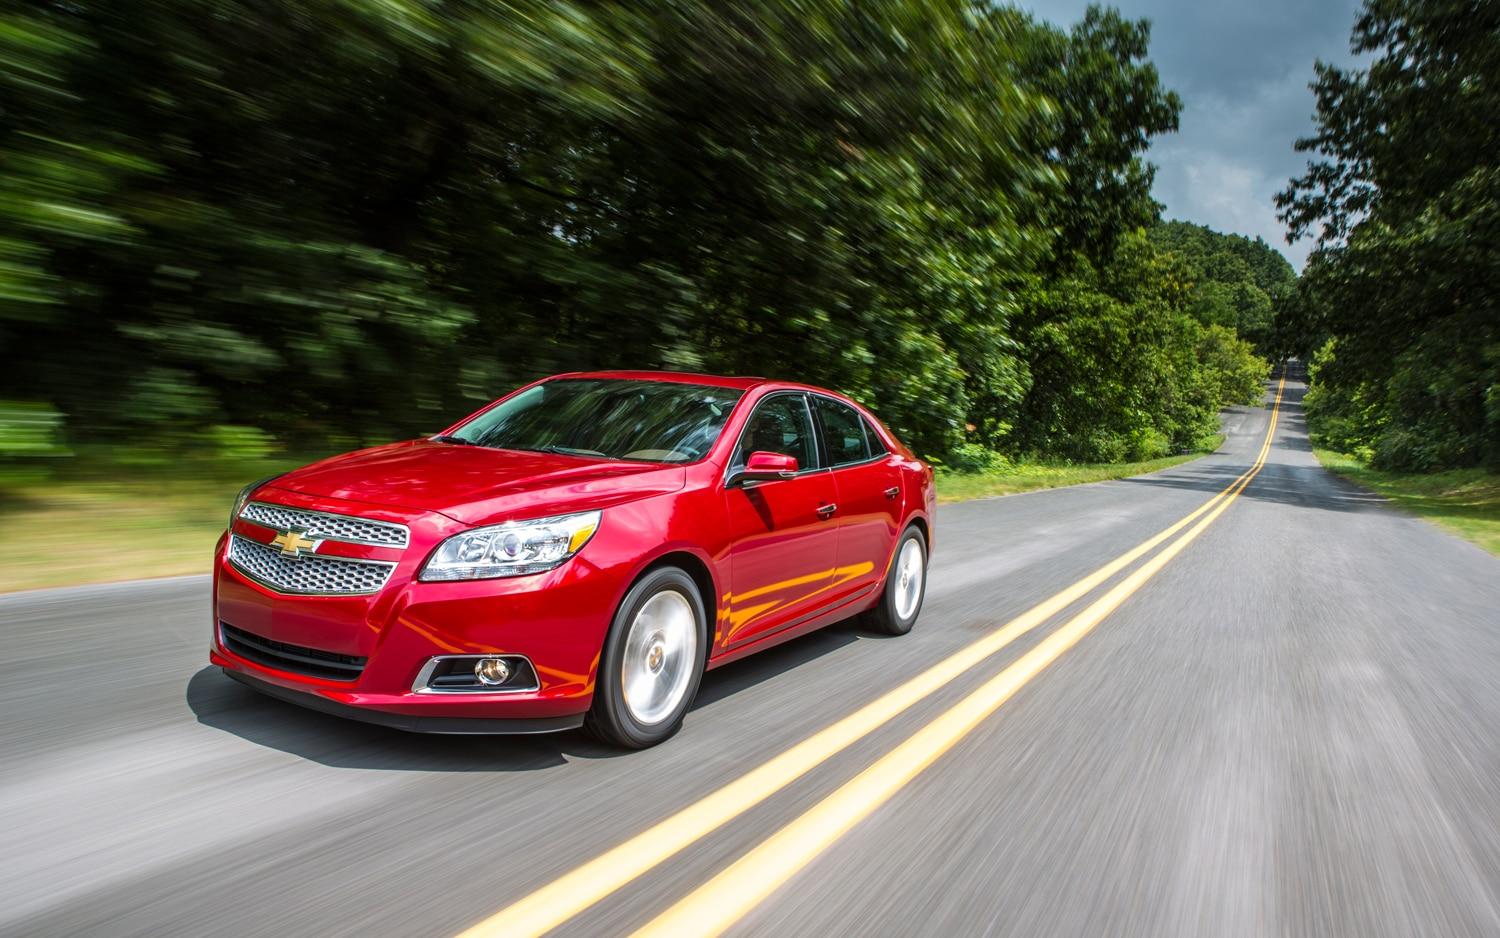 2013 Chevrolet Malibu Front Three Quarter In Motion 31